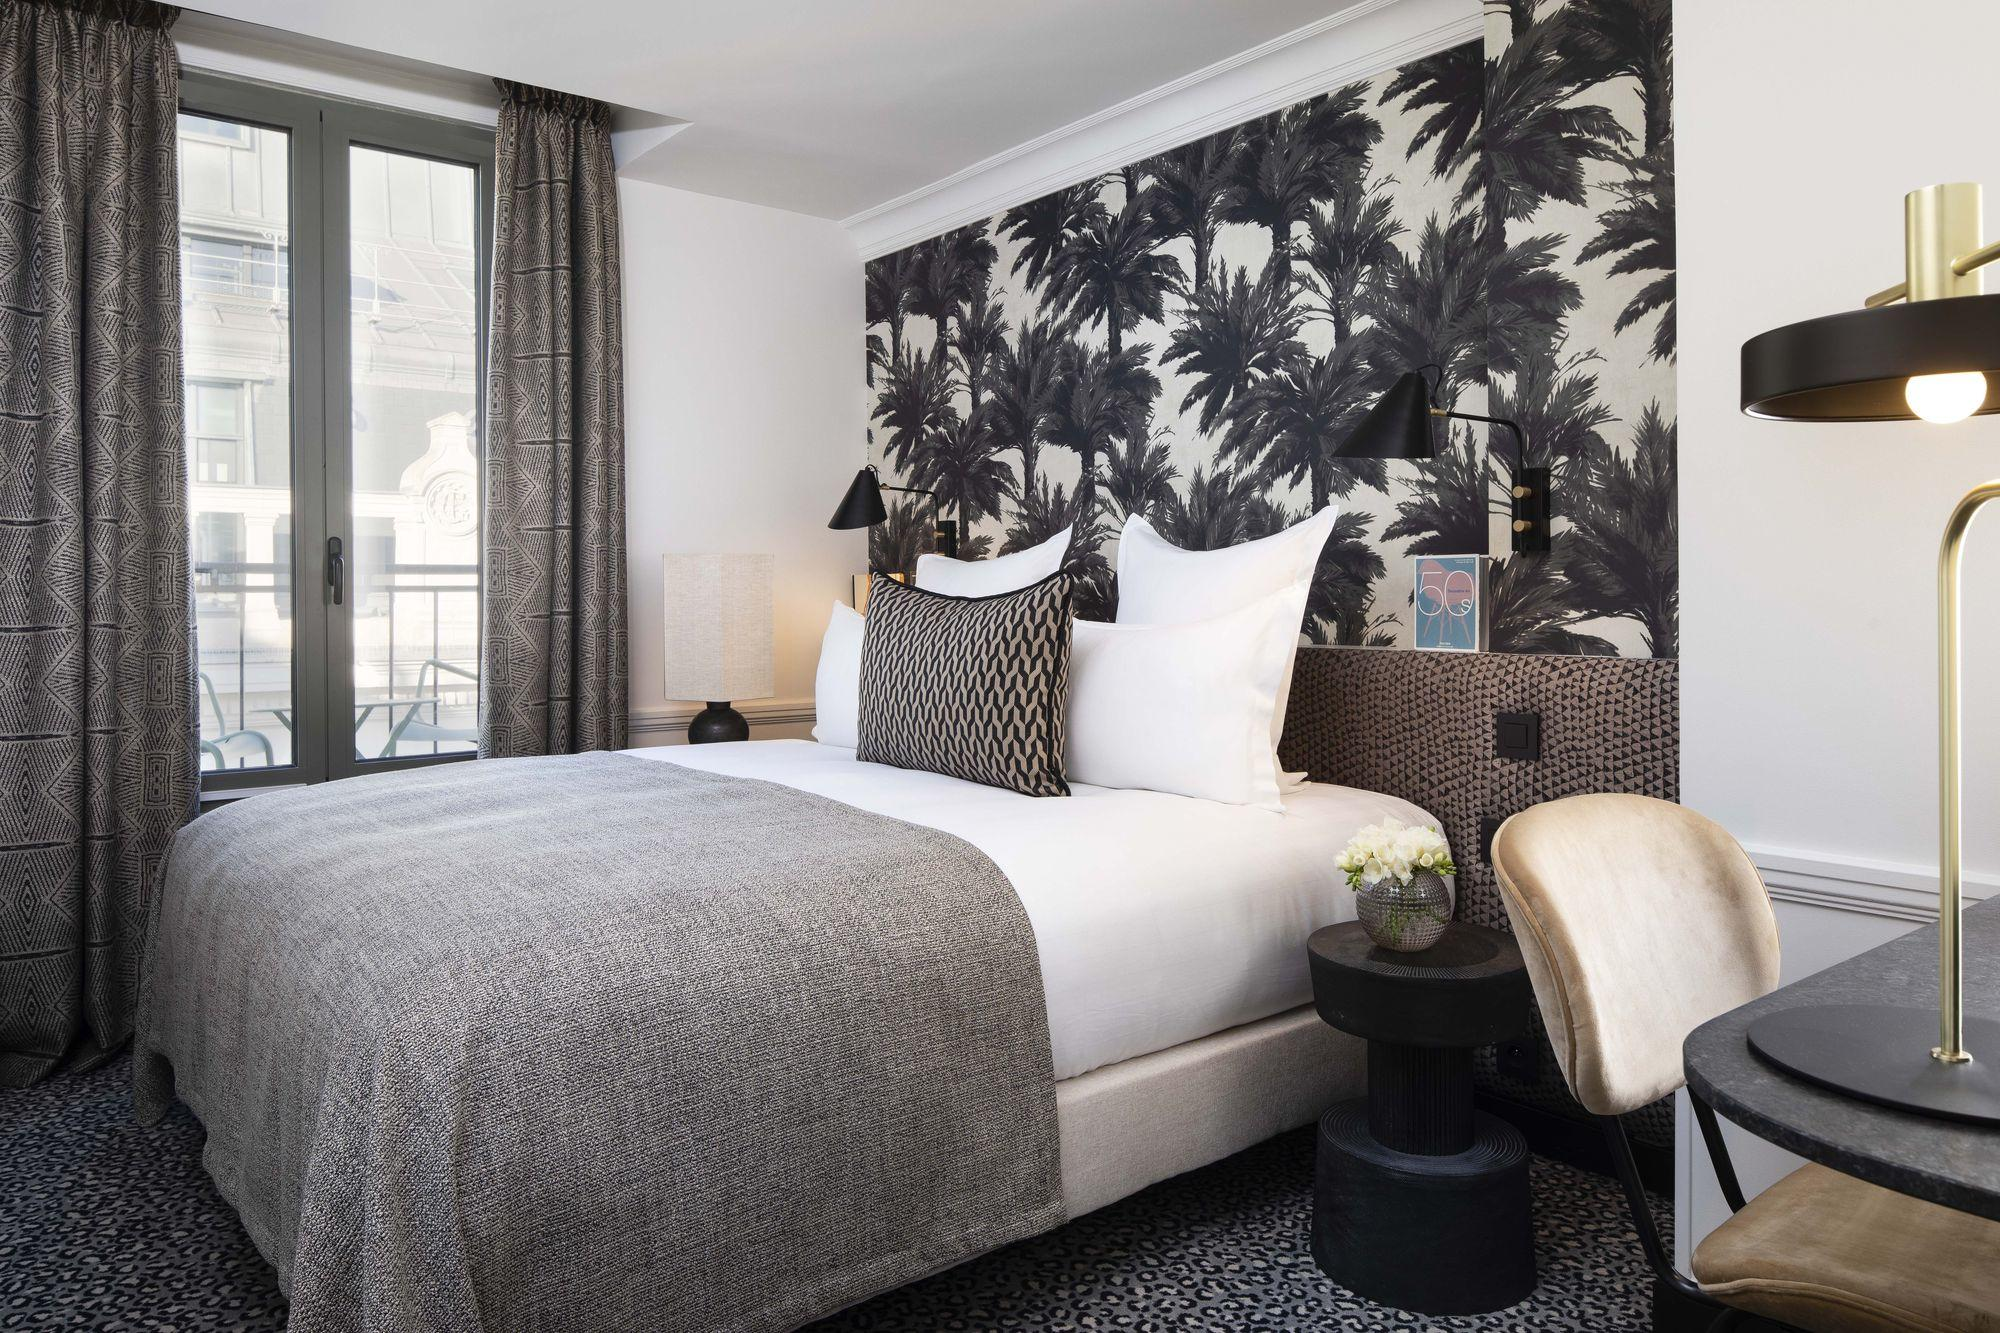 Double Hotel room with terrace - Paris opera